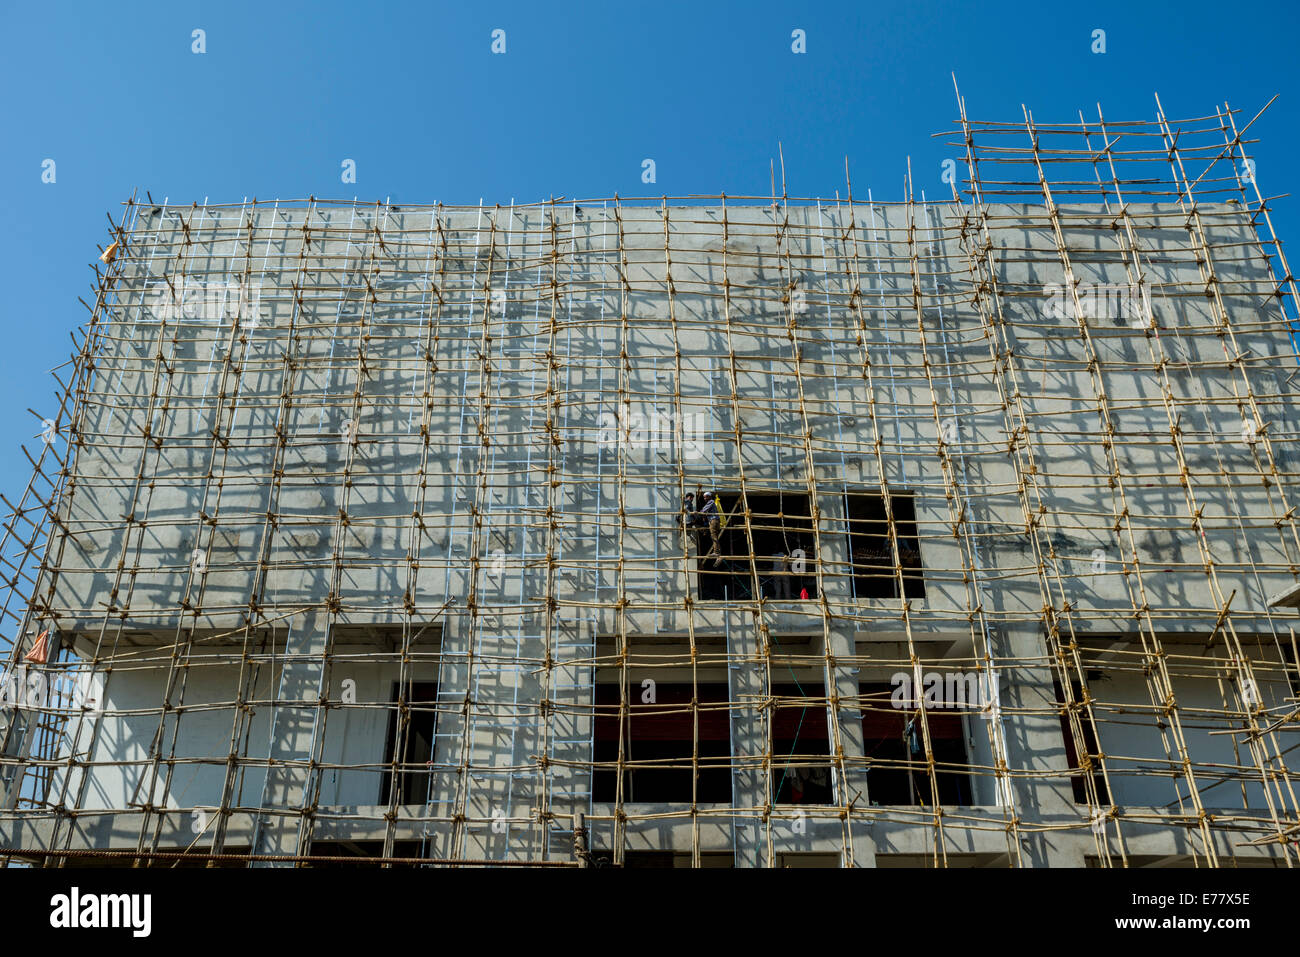 A construction site of a new concrete building with bamboo scaffolding attached, Ahmedabad, Gujarat, India - Stock Image